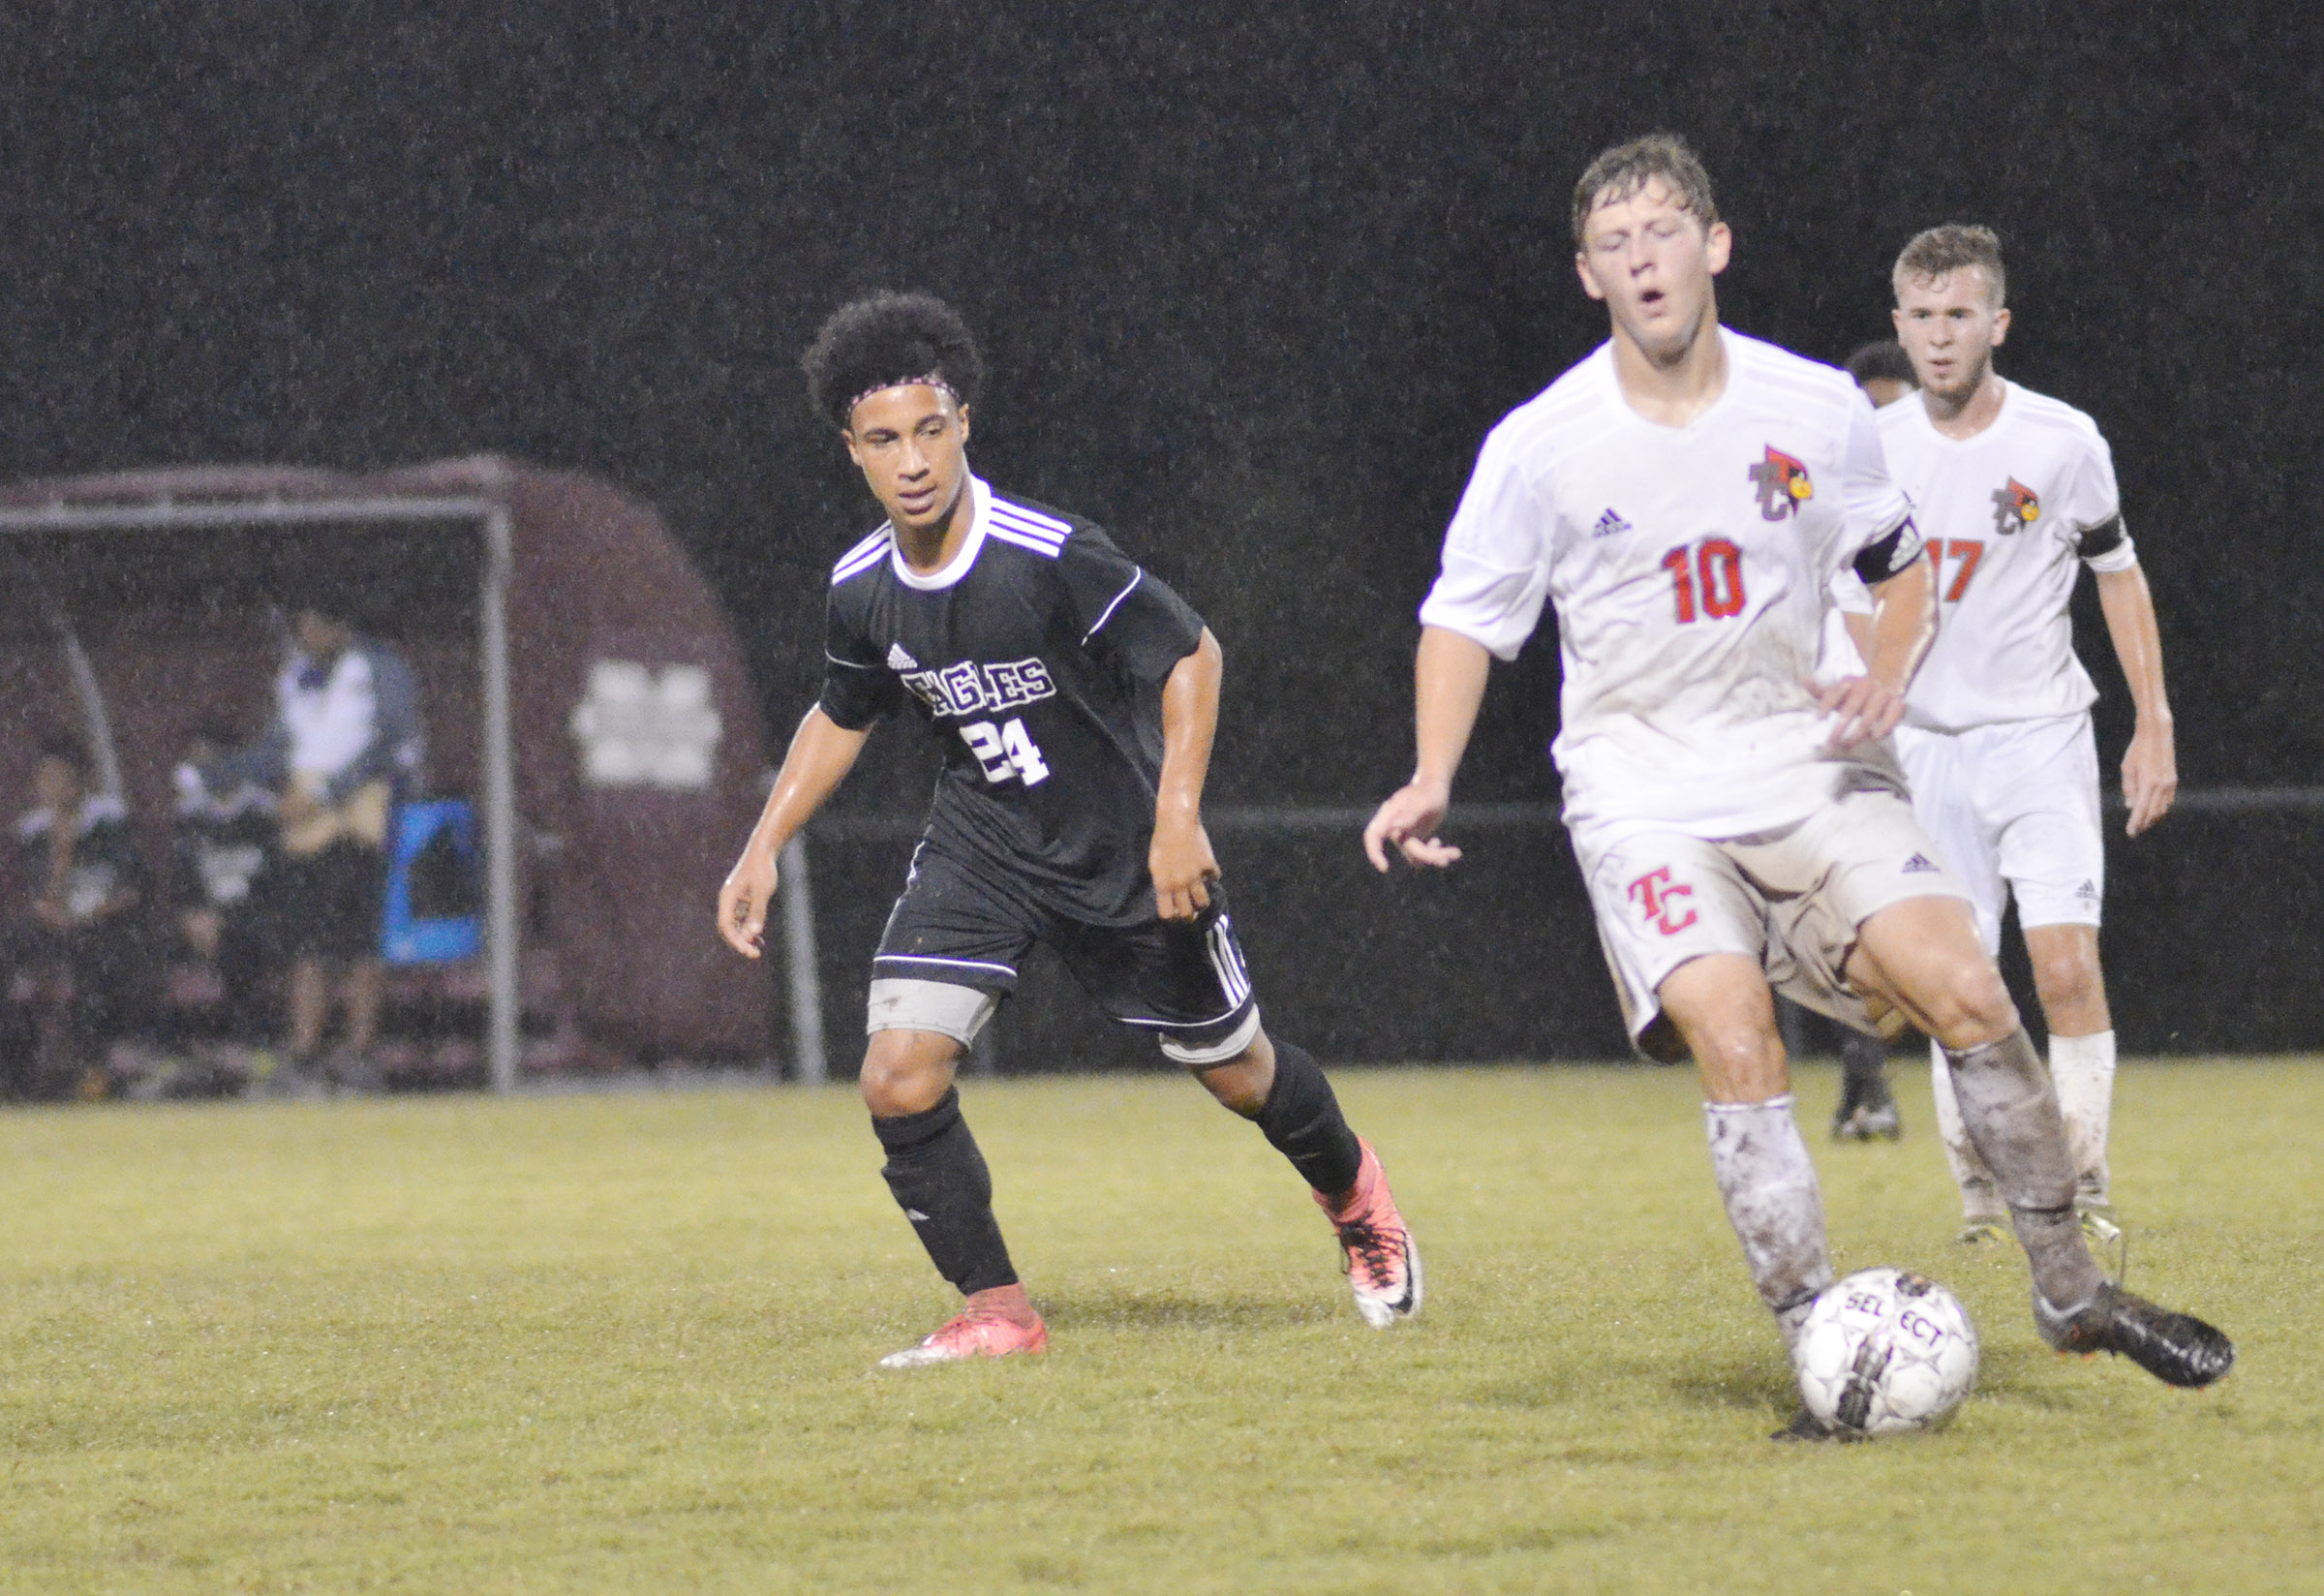 CHS junior Daniel Johnson plays defense.